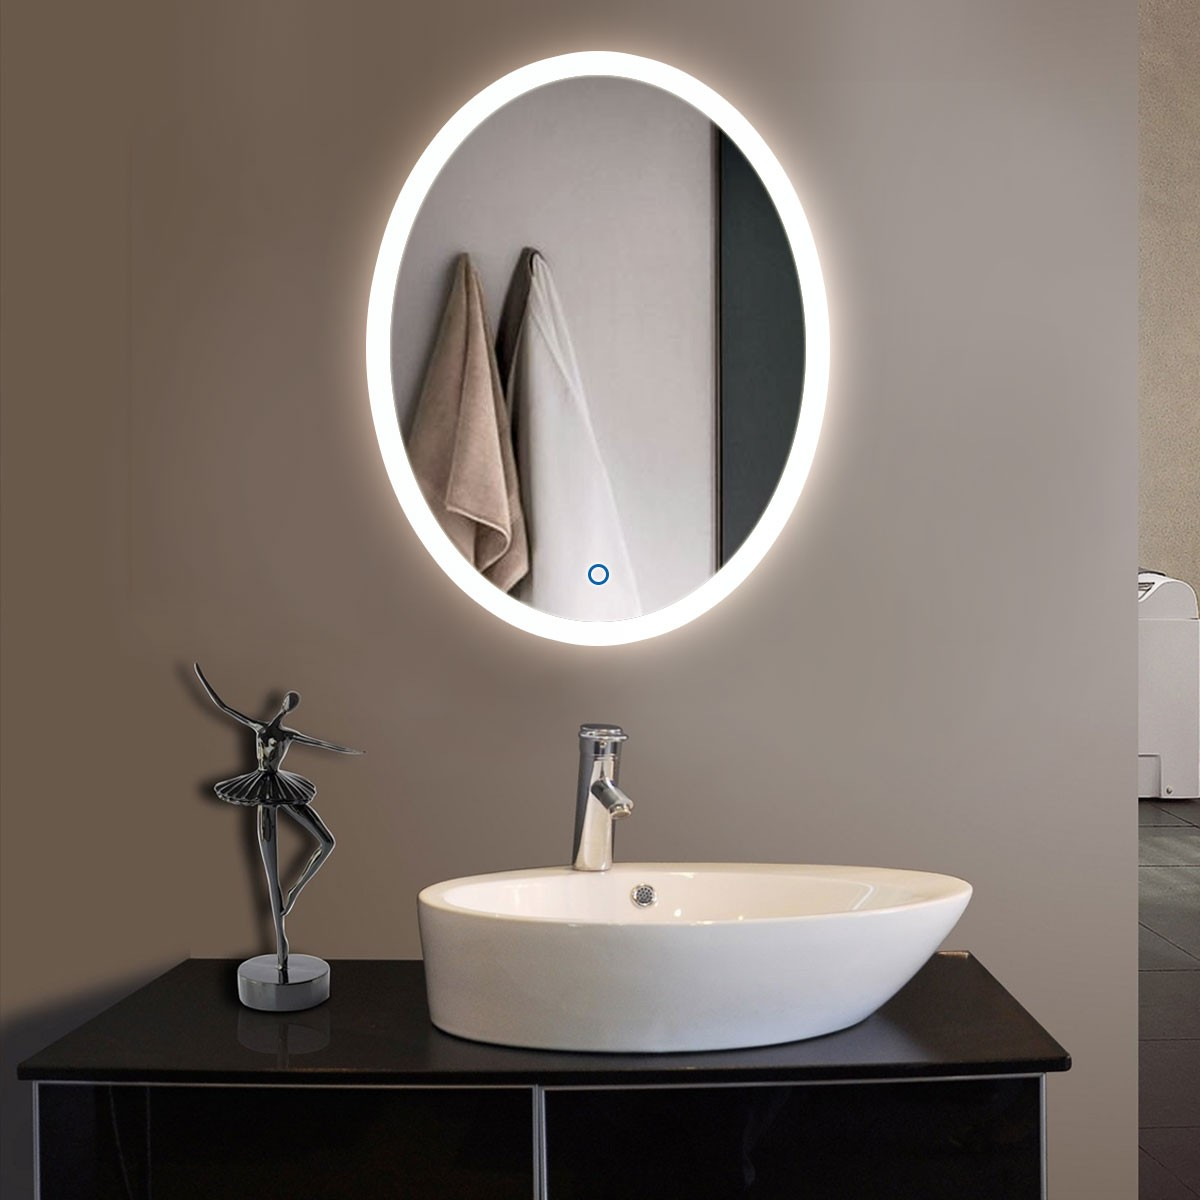 24 X 32 In Vertical Oval Led Bathroom Silvered Mirror With Touch Button Dk Od Cl054